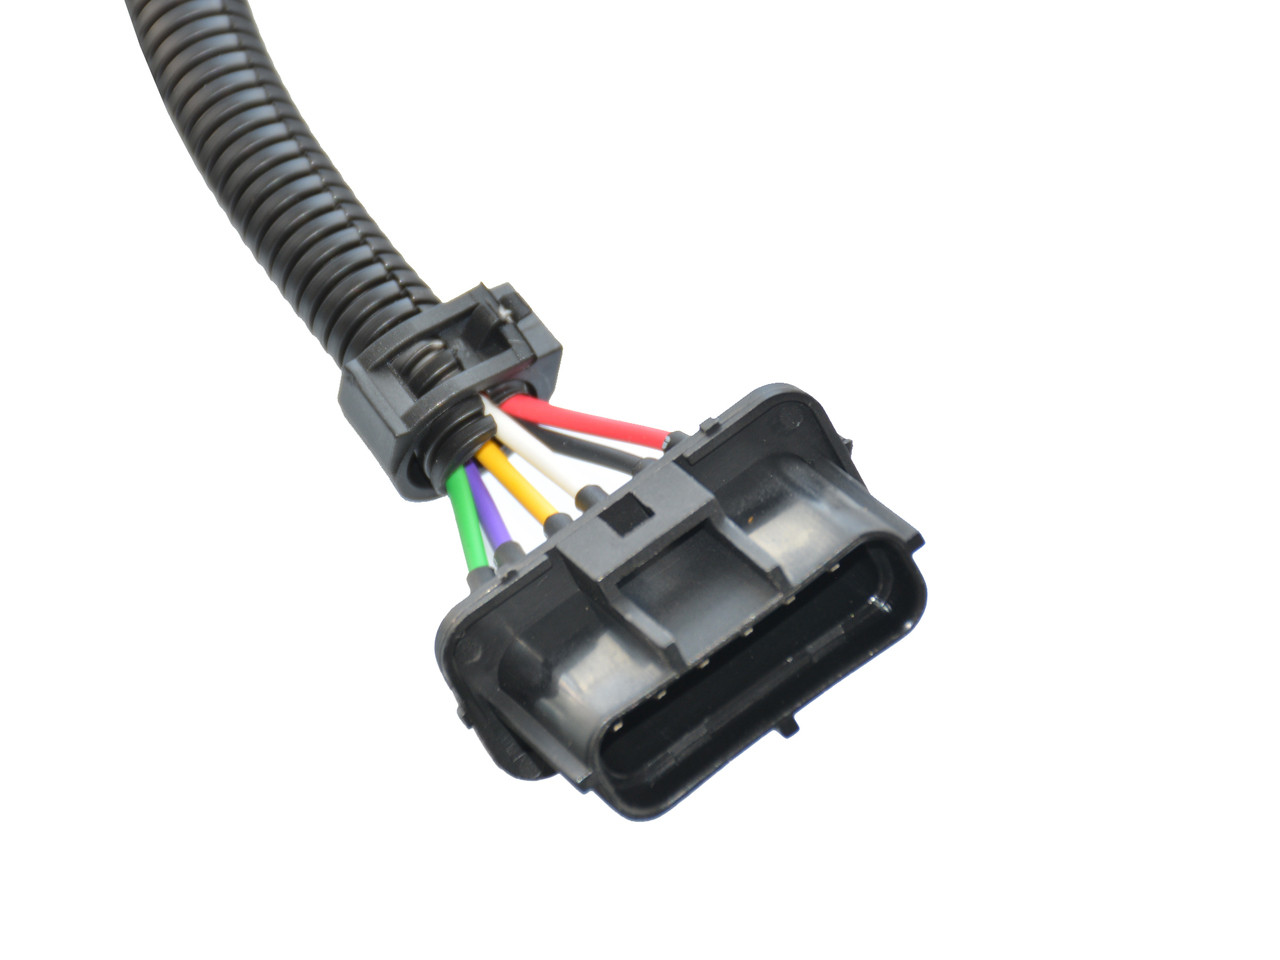 hight resolution of mass air flow maf 24 extension harness sensor connector 6 wire pin fits ford